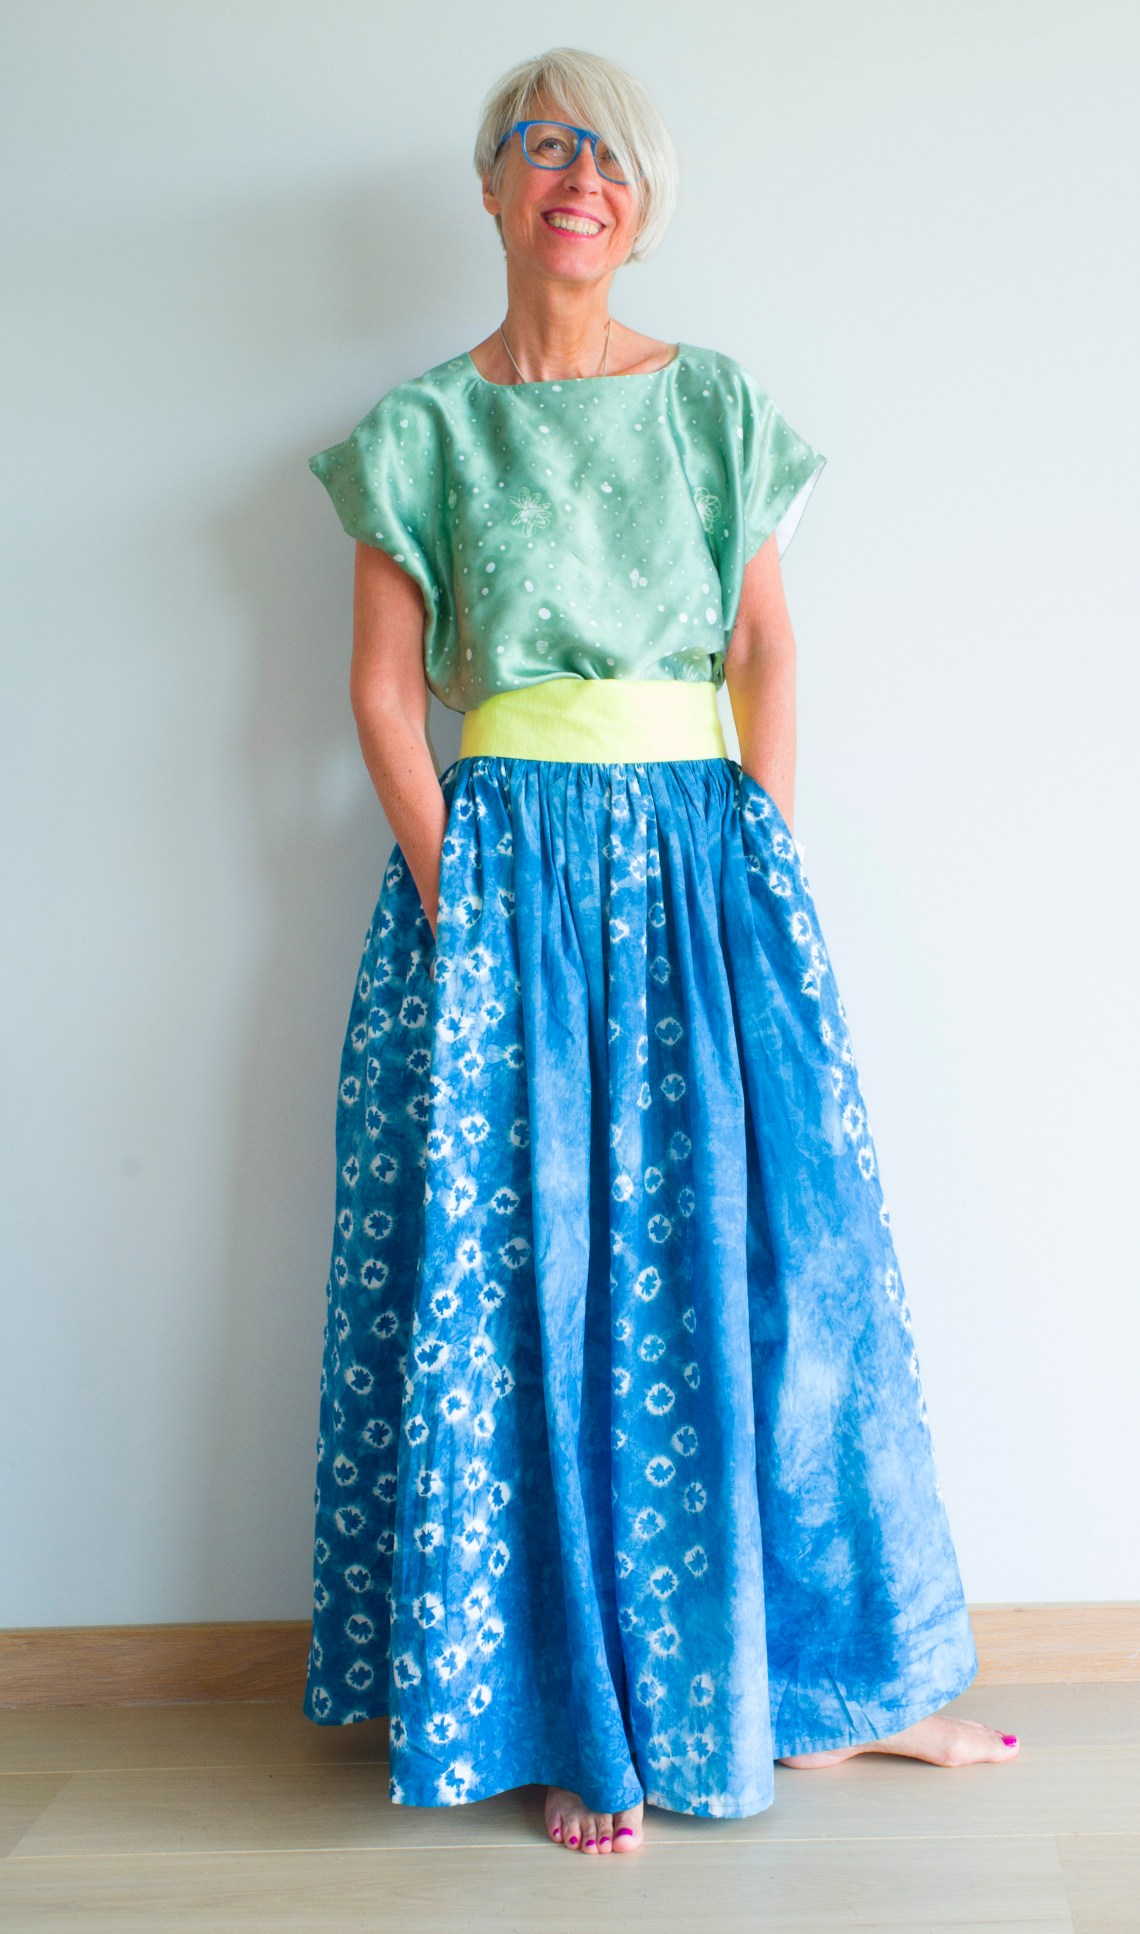 Silk batik huipil with tie dye indigo skirt